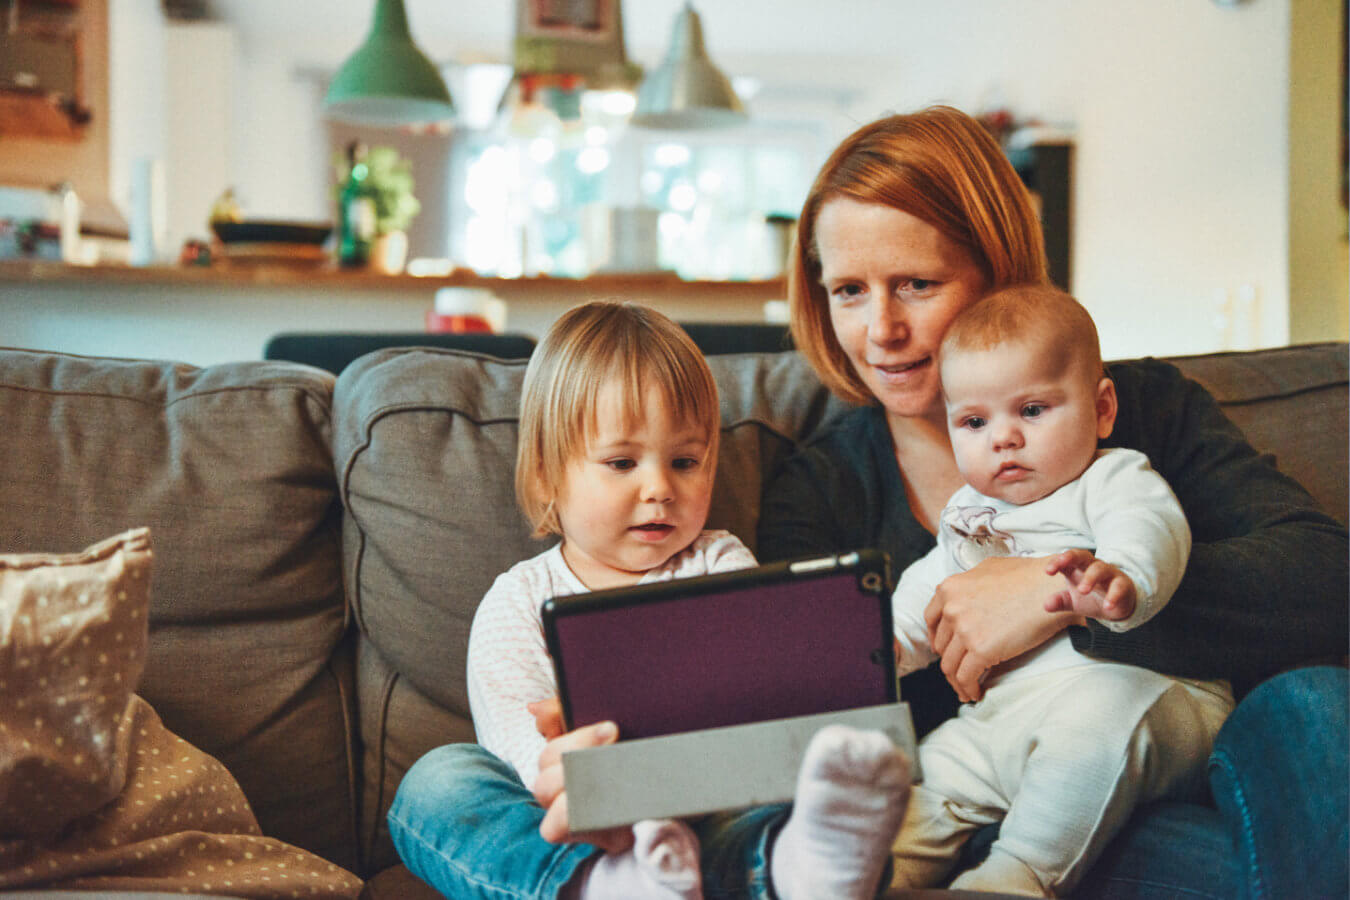 Mom with Two Kids Accessing a Tablet